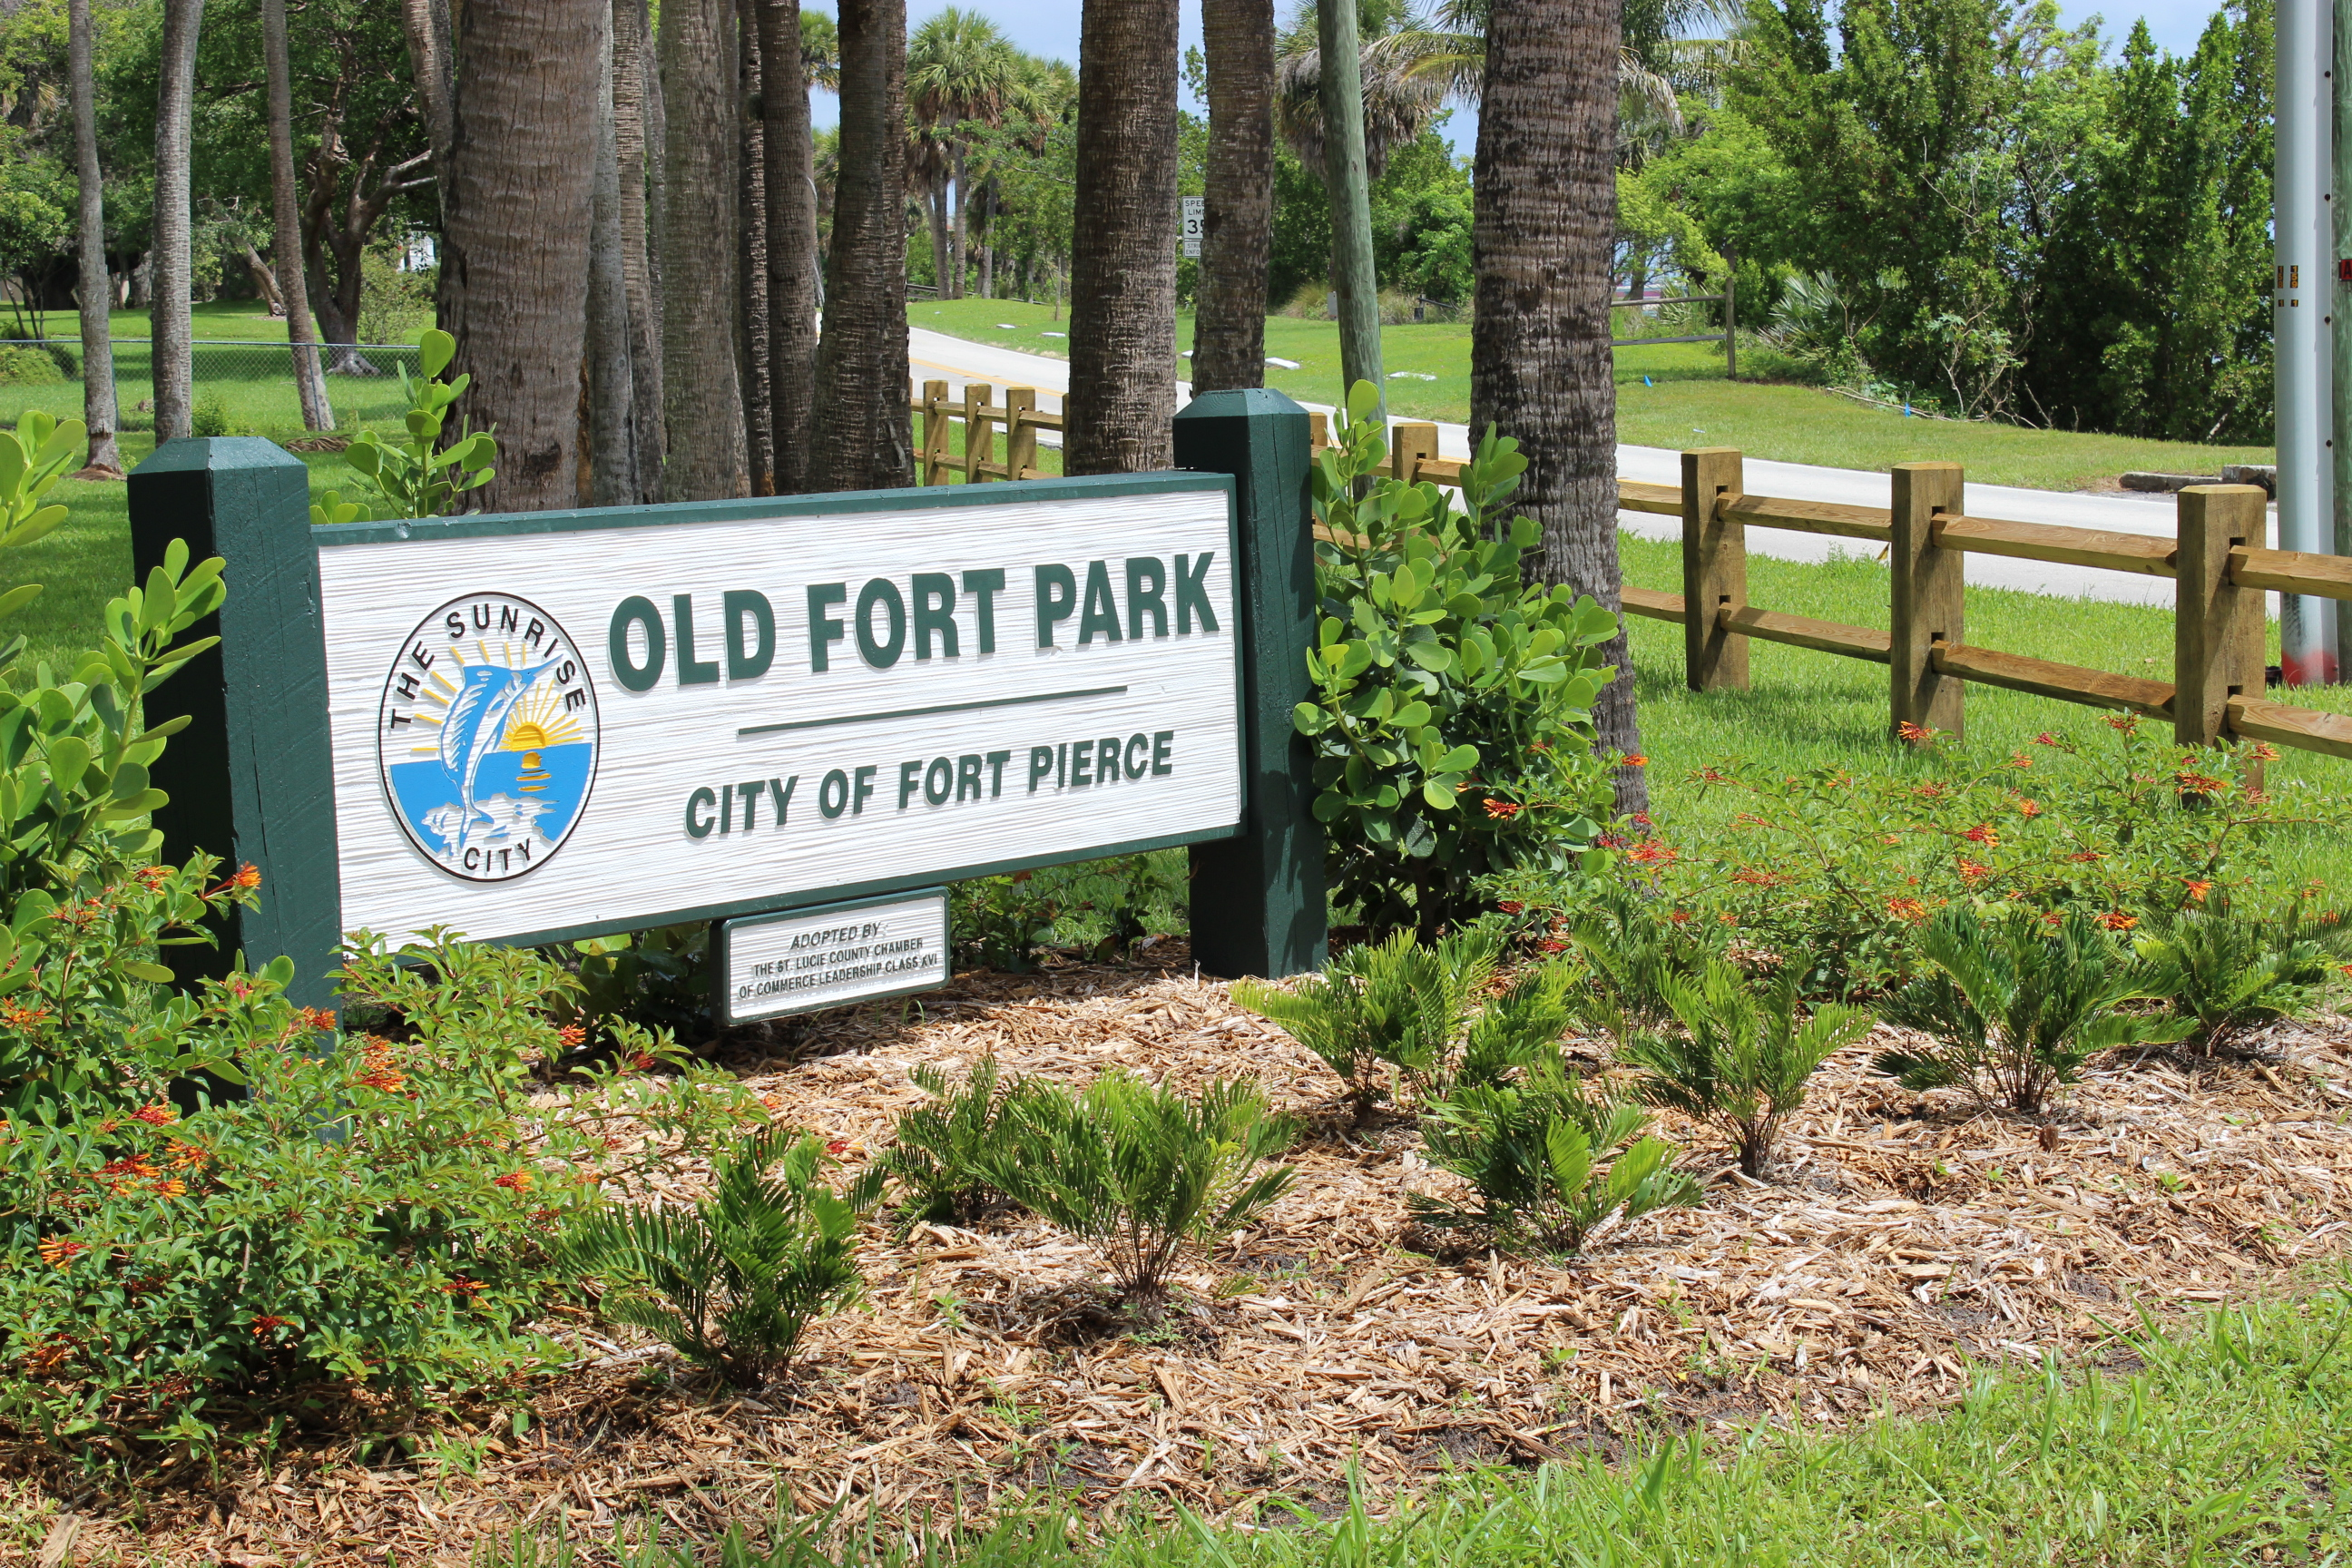 IMG_4356 - Old Fort Park